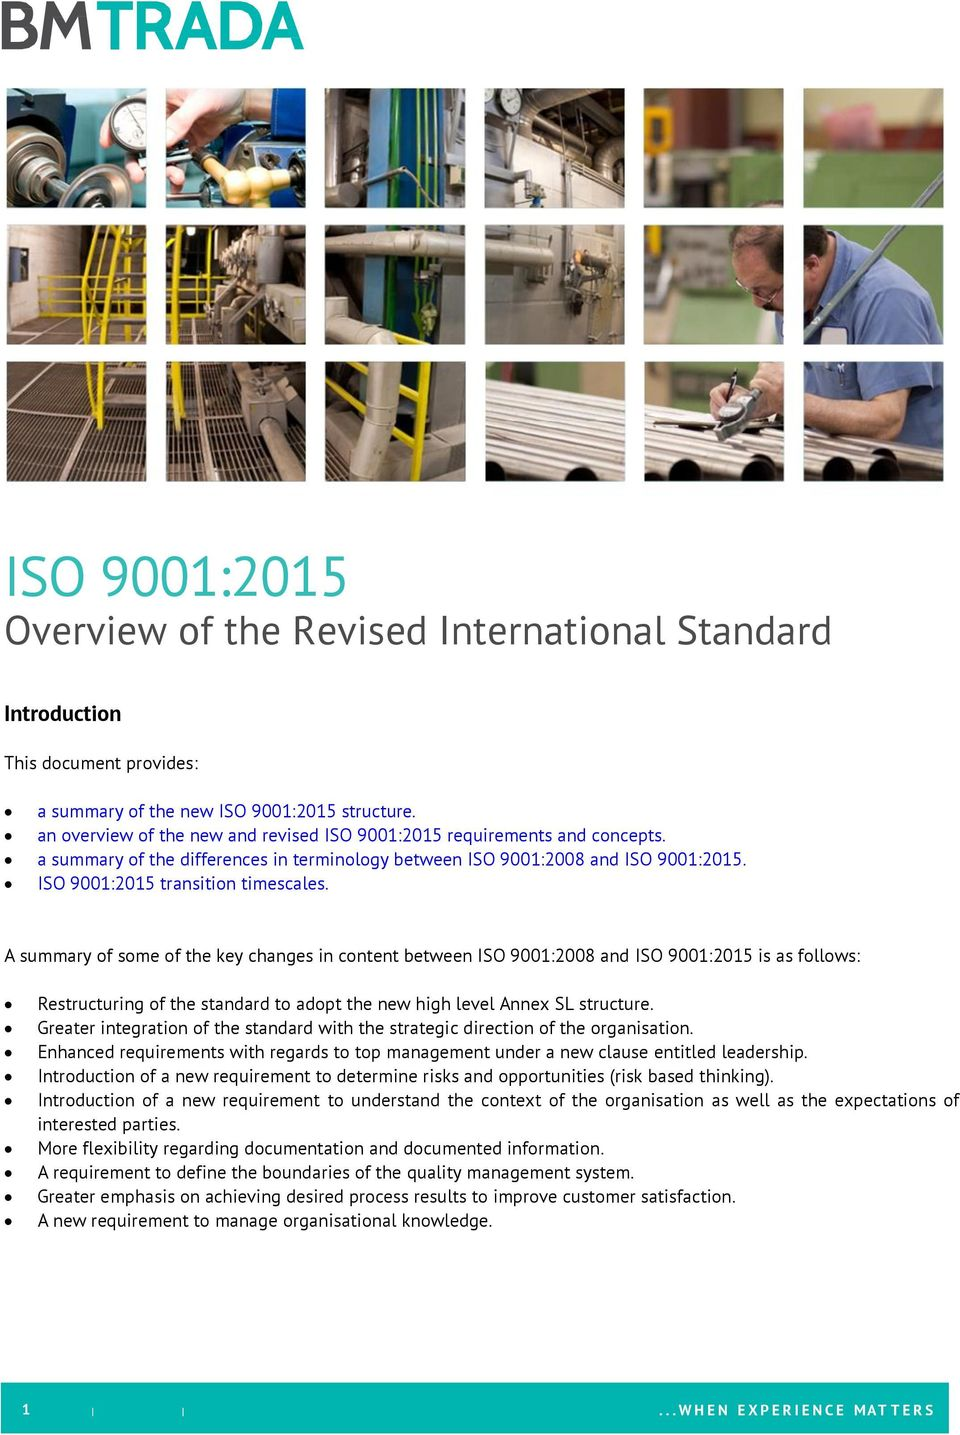 A summary of some of the key changes in content between ISO 9001:2008 and ISO 9001:2015 is as follows: Restructuring of the standard to adopt the new high level Annex SL structure.